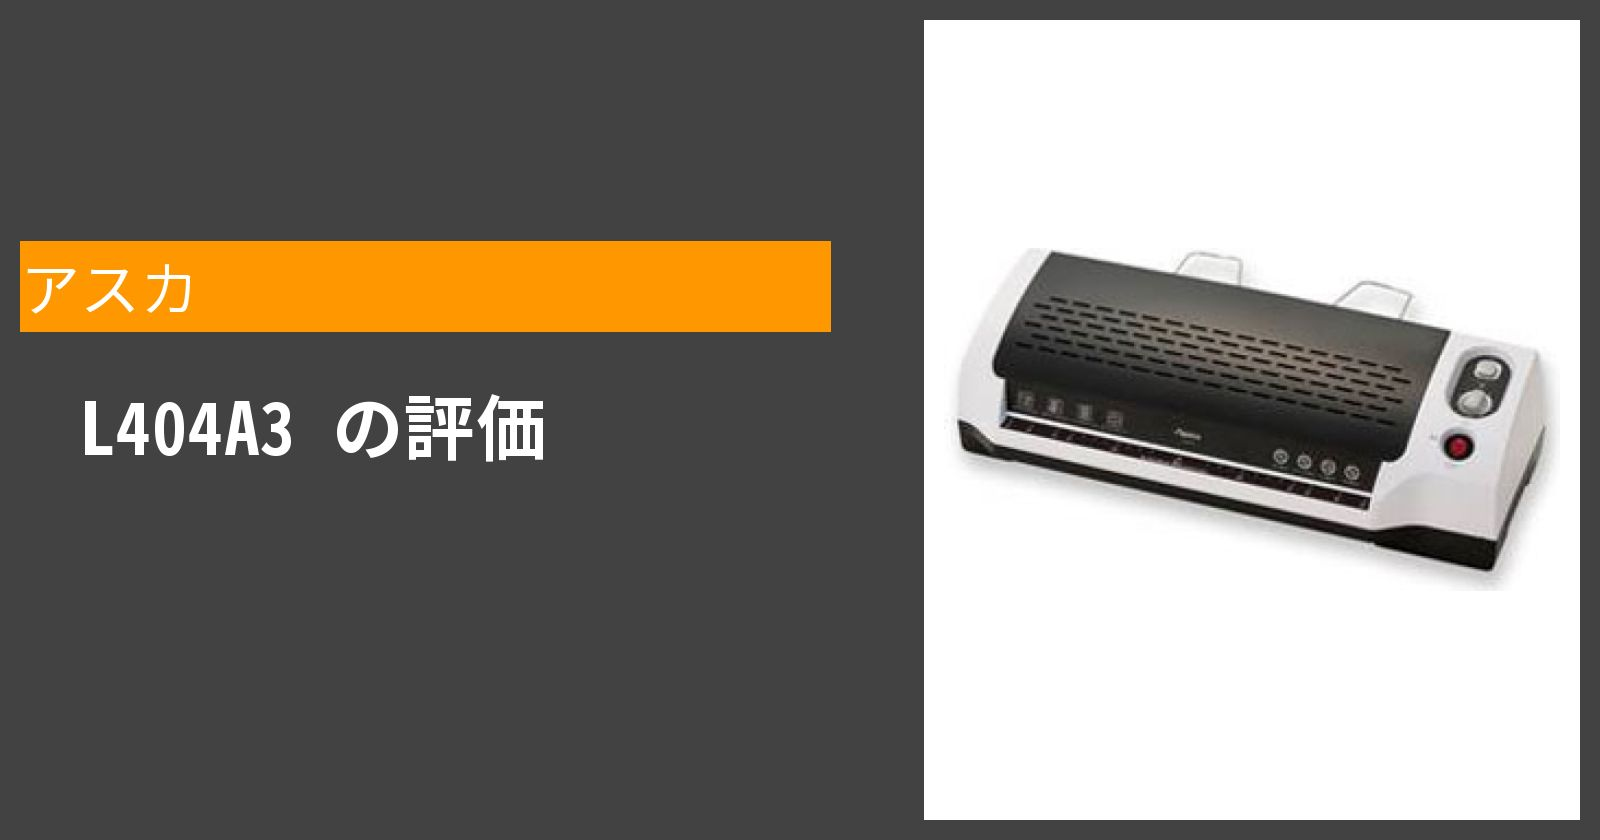 L404A3を徹底評価